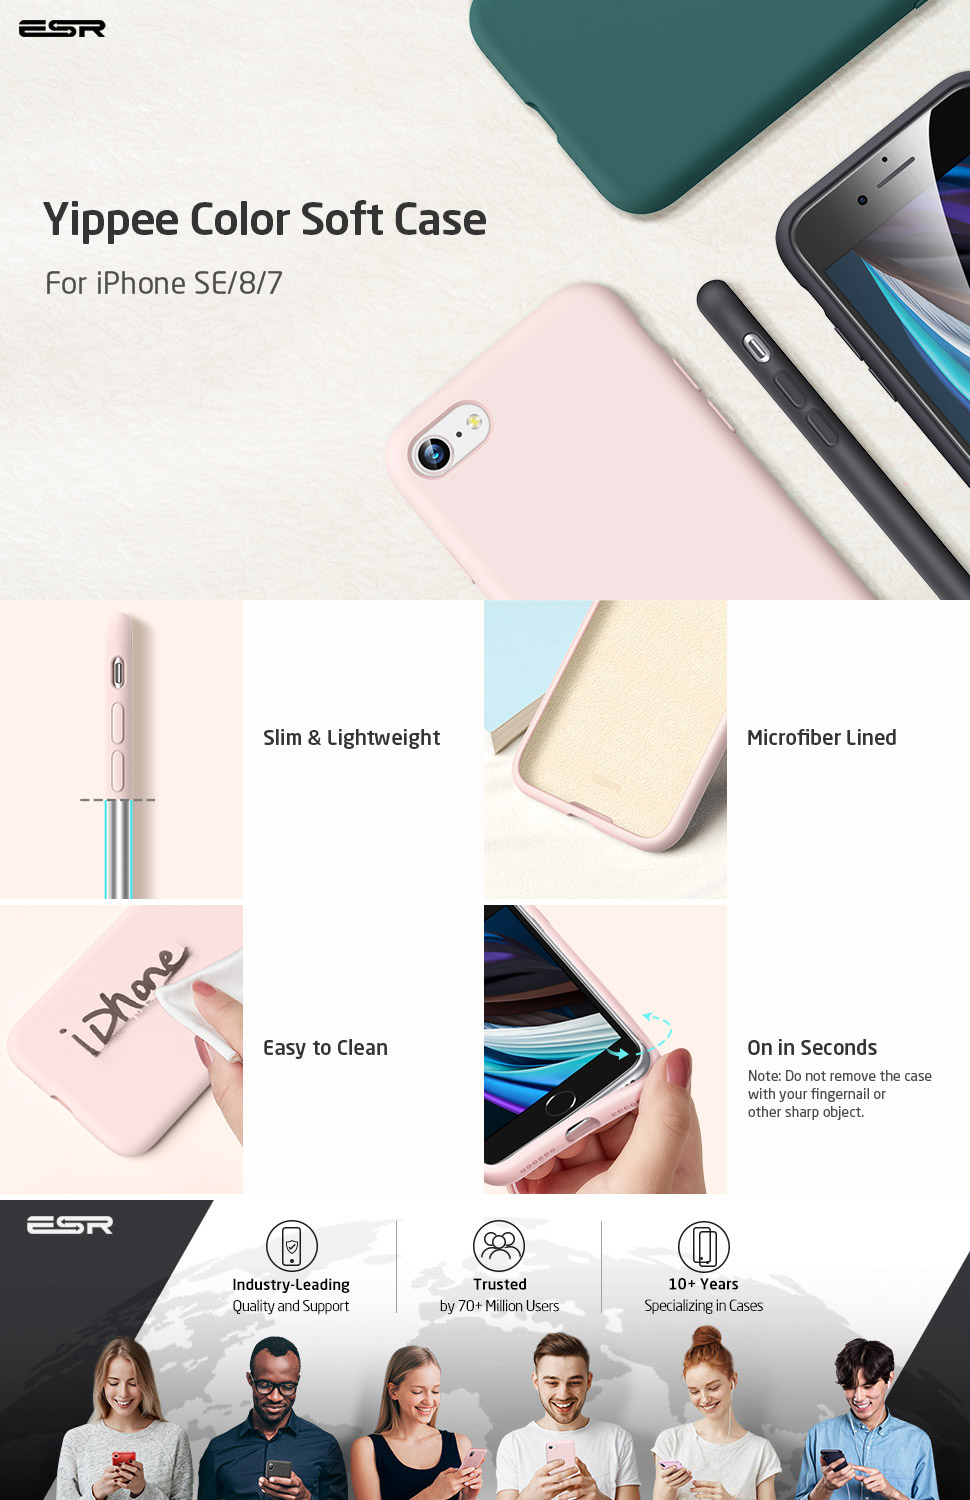 Gohub Shop - Yippee Color - Pink